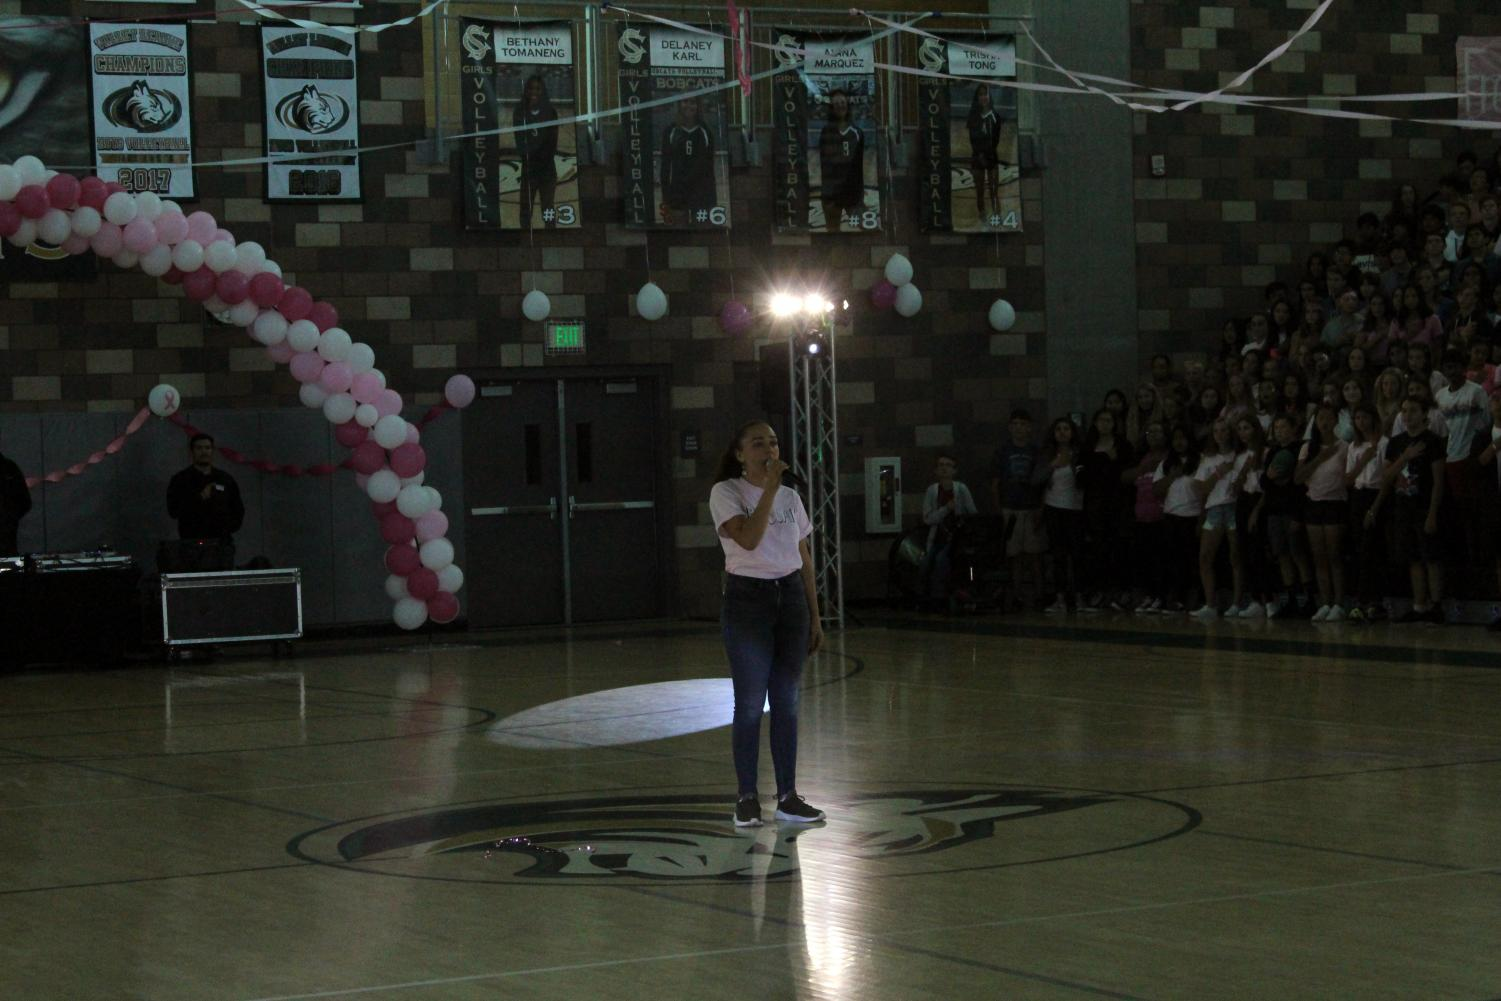 Priya+Richards+sings+the+%E2%80%9CStar-Spangled+Banner%E2%80%9D+for+the+students+of+Sage+Creek+before+the+pep+rally+on+Oct.+4.+The+pep+rally+encouraged+school+spirit+before+Sage+Creek%E2%80%99s+annual+Staff+vs.+Students+Flag+Football+tournament.